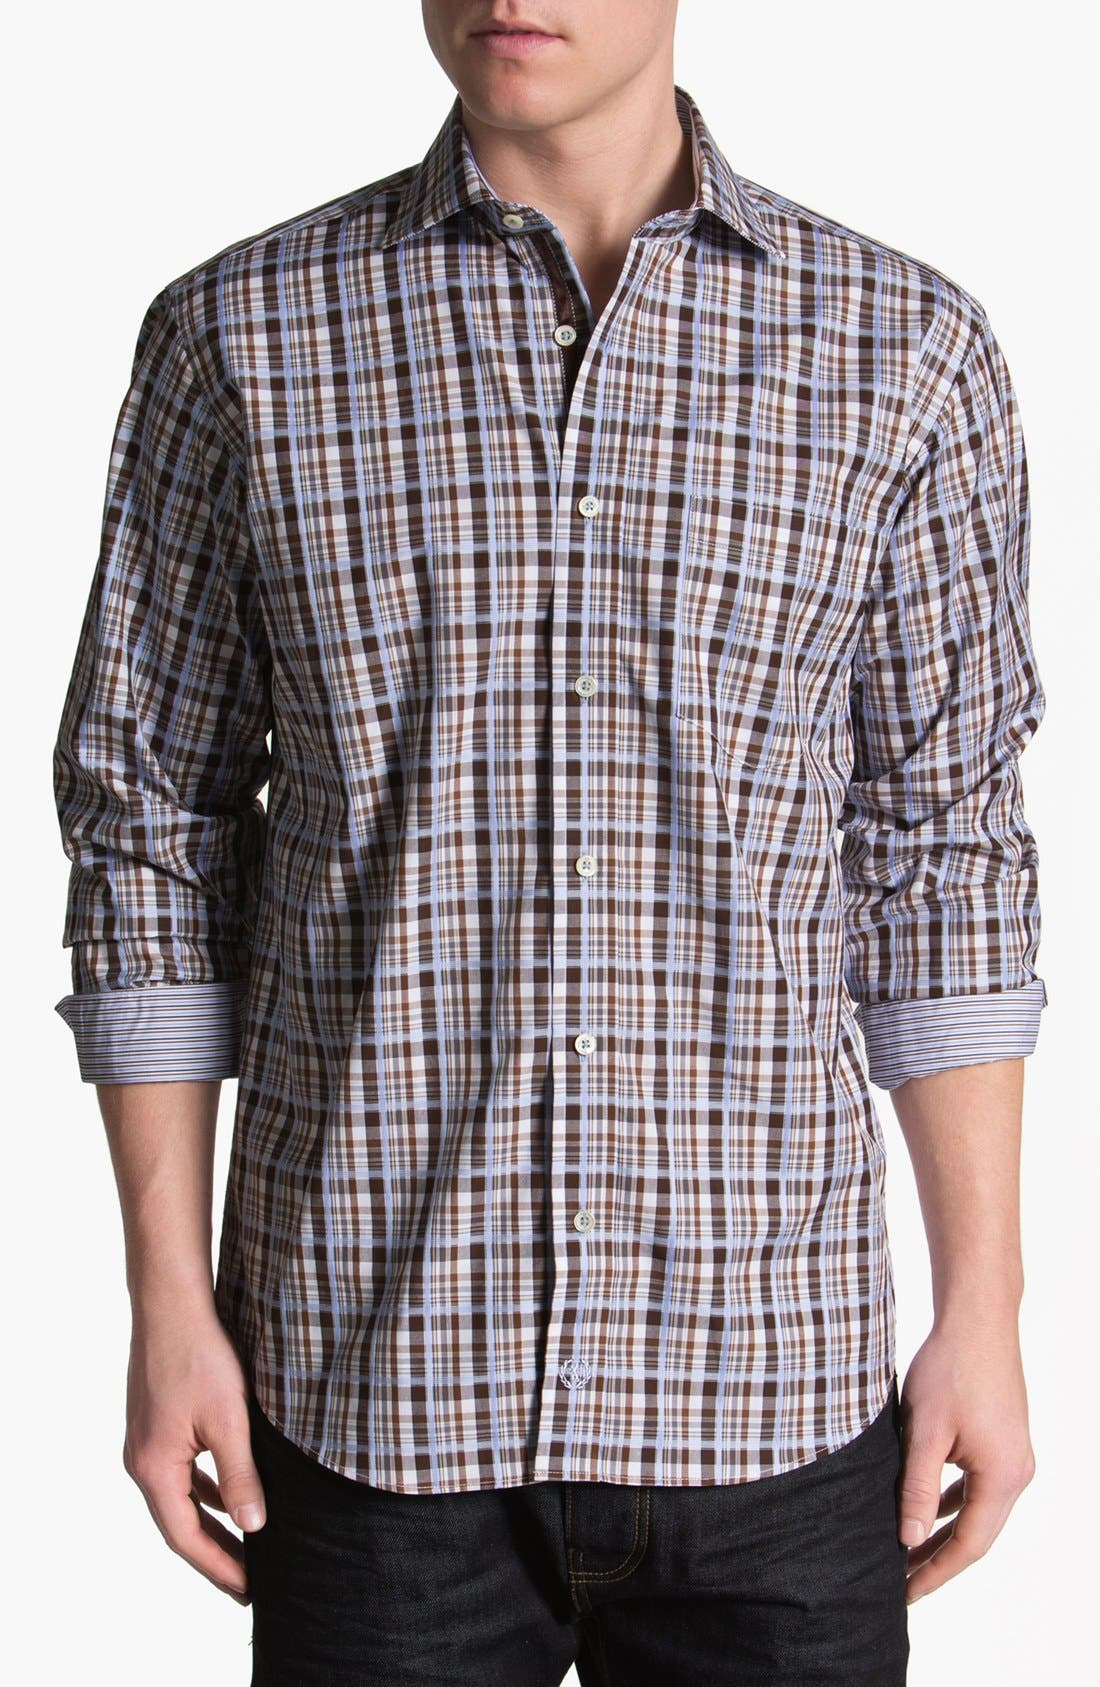 Alternate Image 1 Selected - BUGATCHI Classic Fit Sport Shirt (Tall)